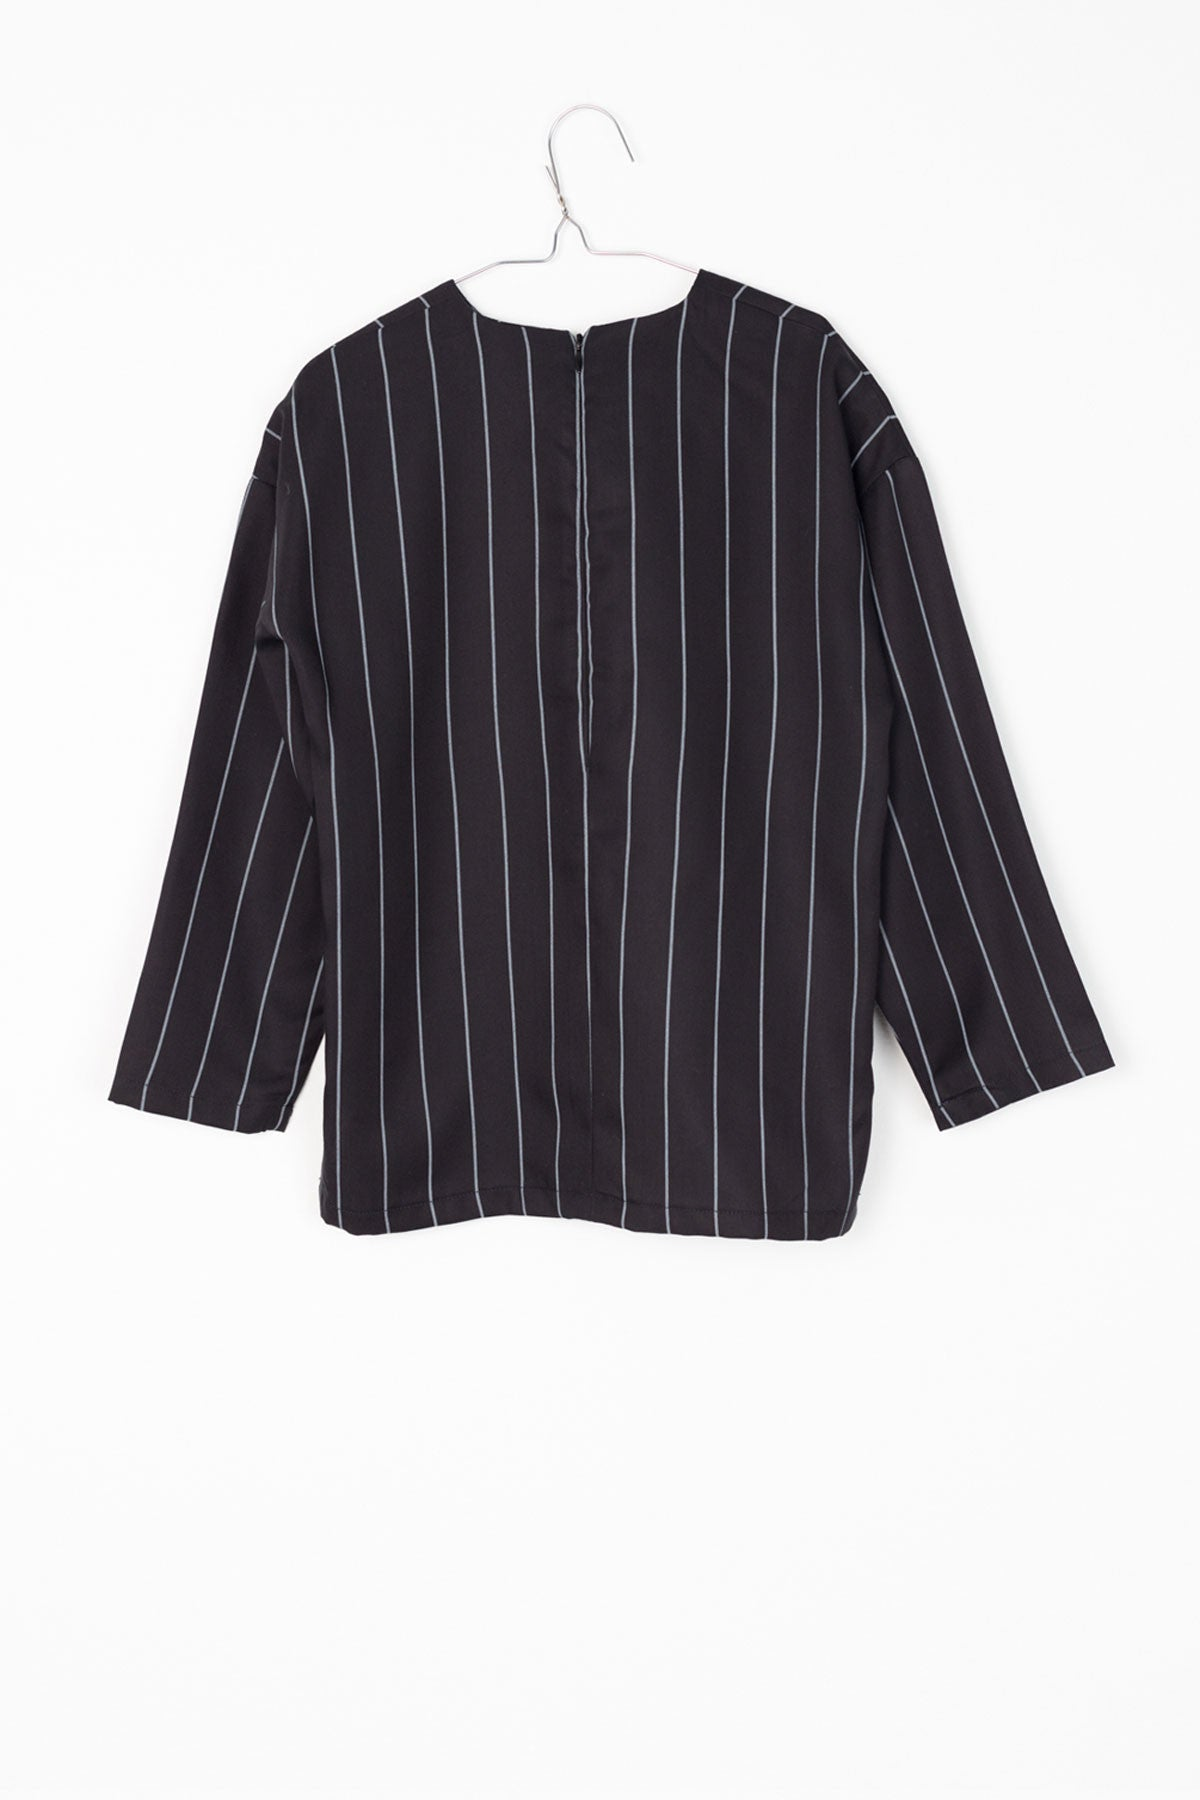 Motoreta Black Lines Evan Shirt - Ladida